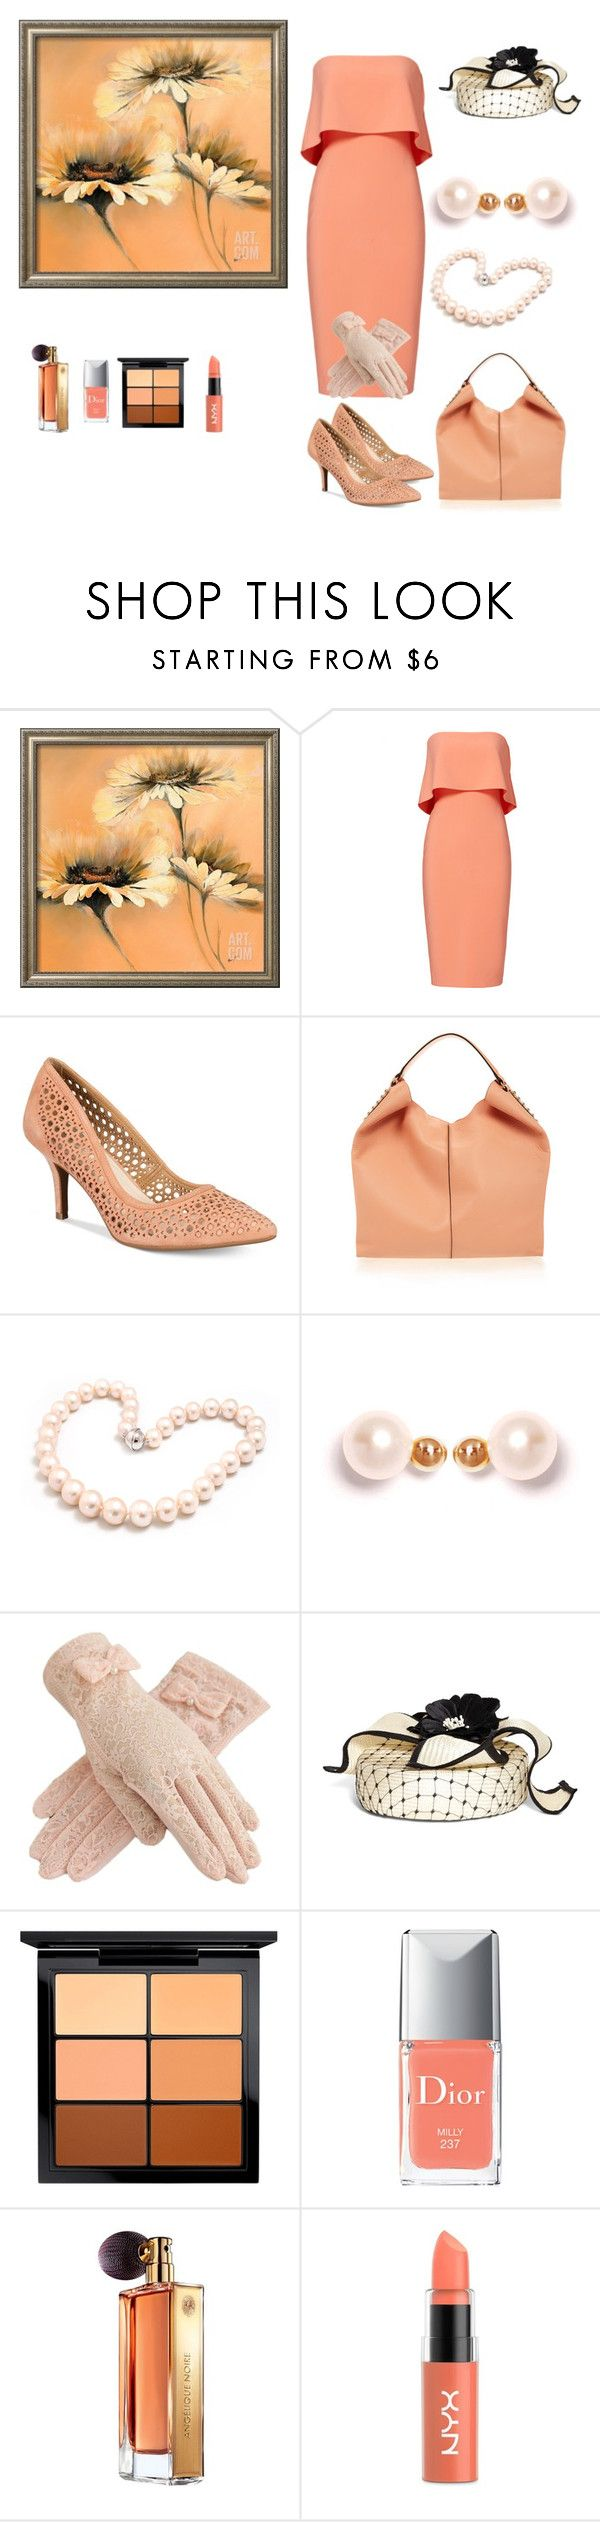 """""""Sunday church"""" by chauert on Polyvore featuring Alfani, Rebecca Minkoff, Hiho Silver, XISSJEWELLERY, Brooks Brothers, MAC Cosmetics, Christian Dior, Guerlain and NYX"""